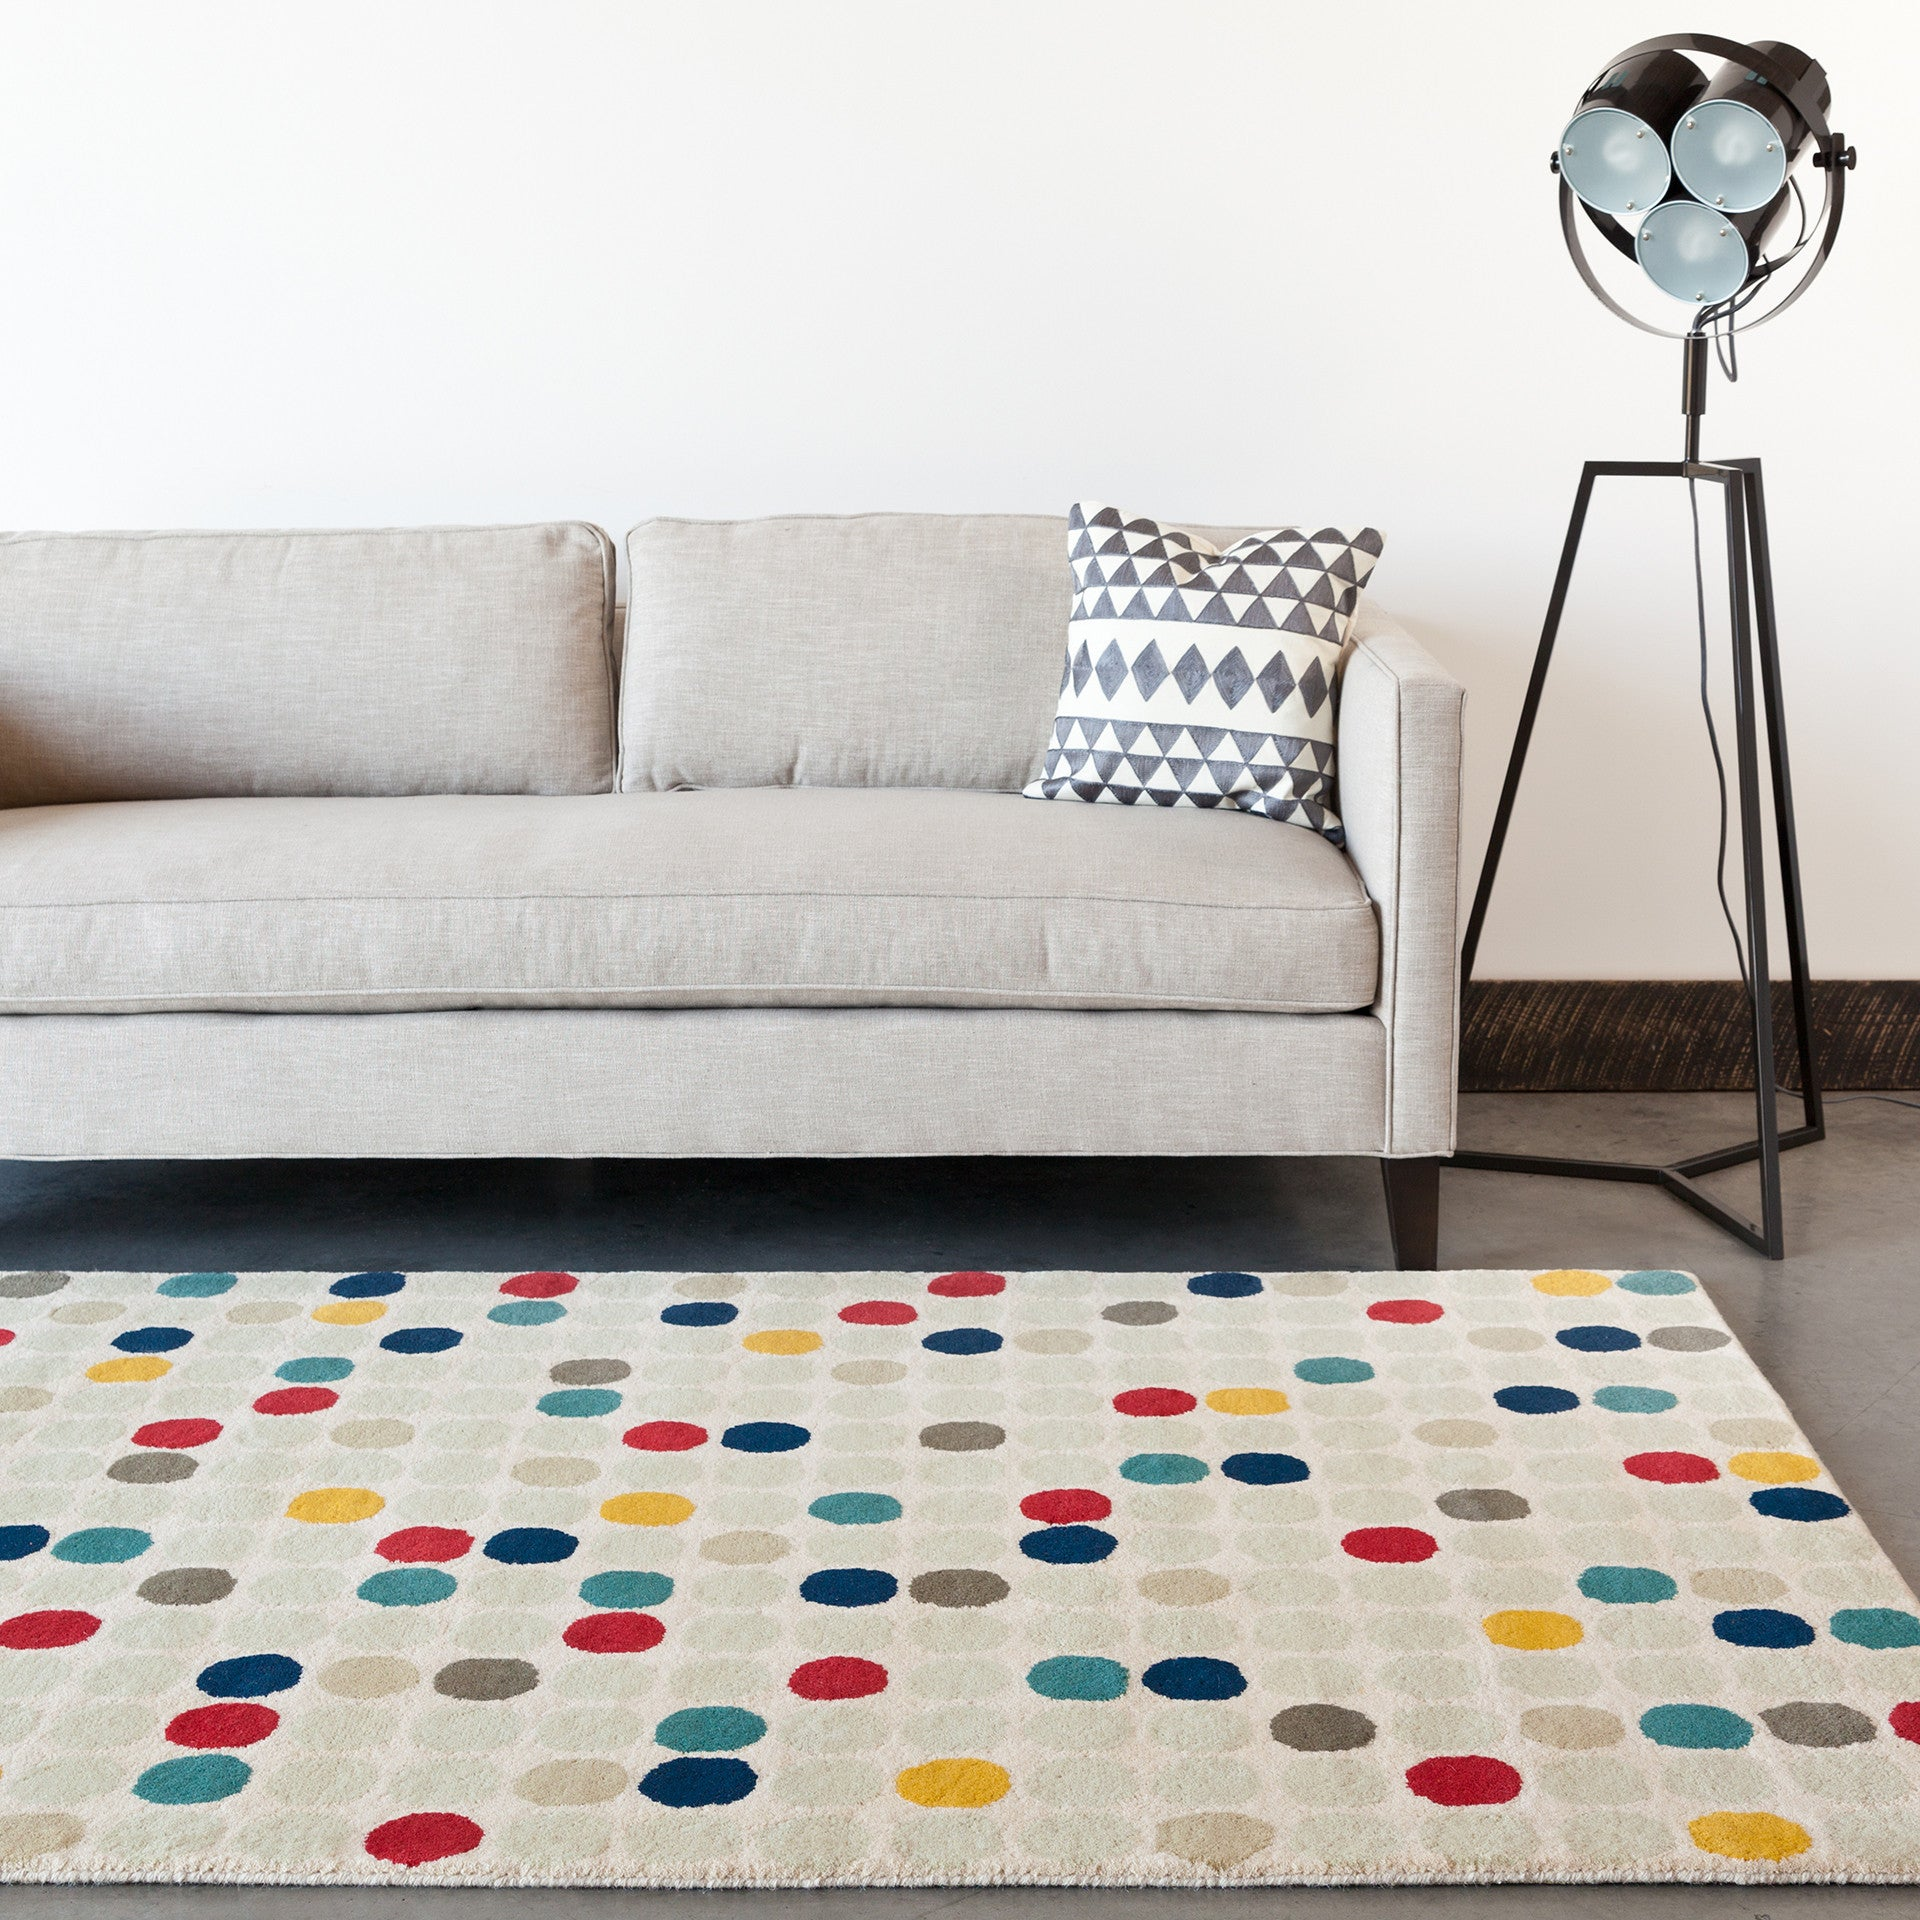 Chandra Stella Patterned Contemporary Wool Beige Aqua Area: Stella Collection Hand-Tufted Area Rug In Cream, Red